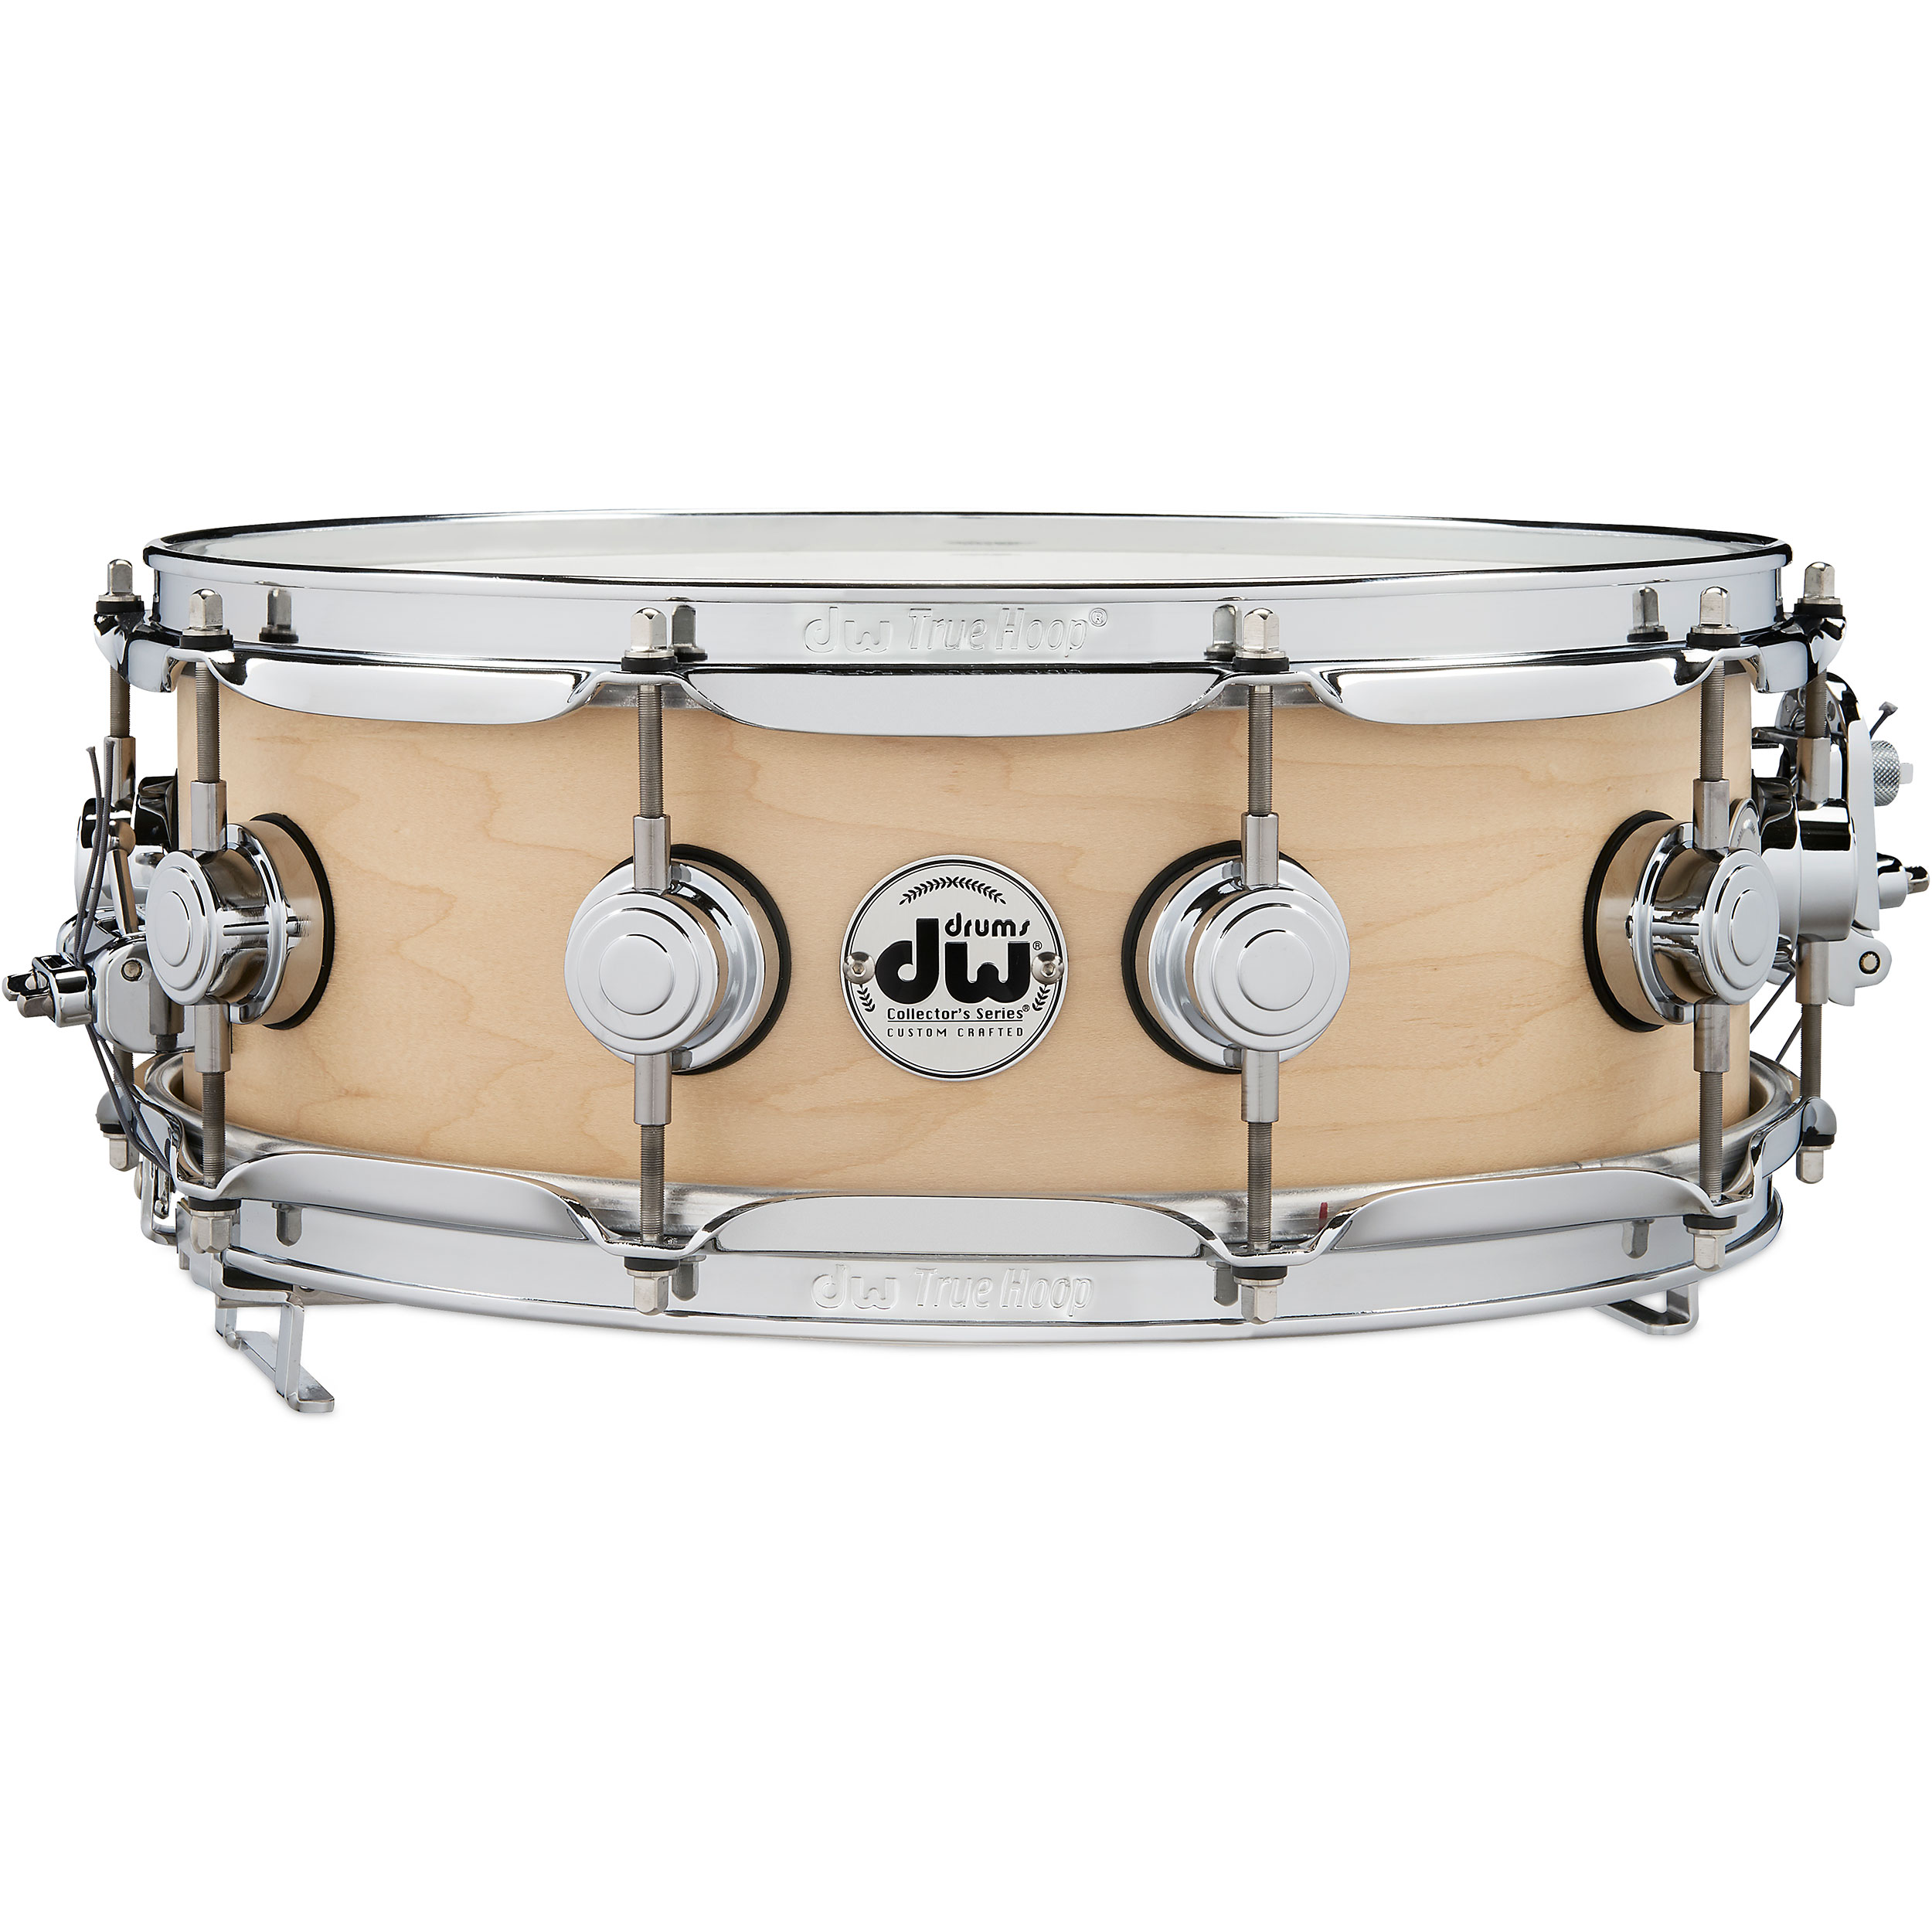 "DW 5"" x 14"" Pure Maple True-Sonic Snare Drum in Satin Oil"